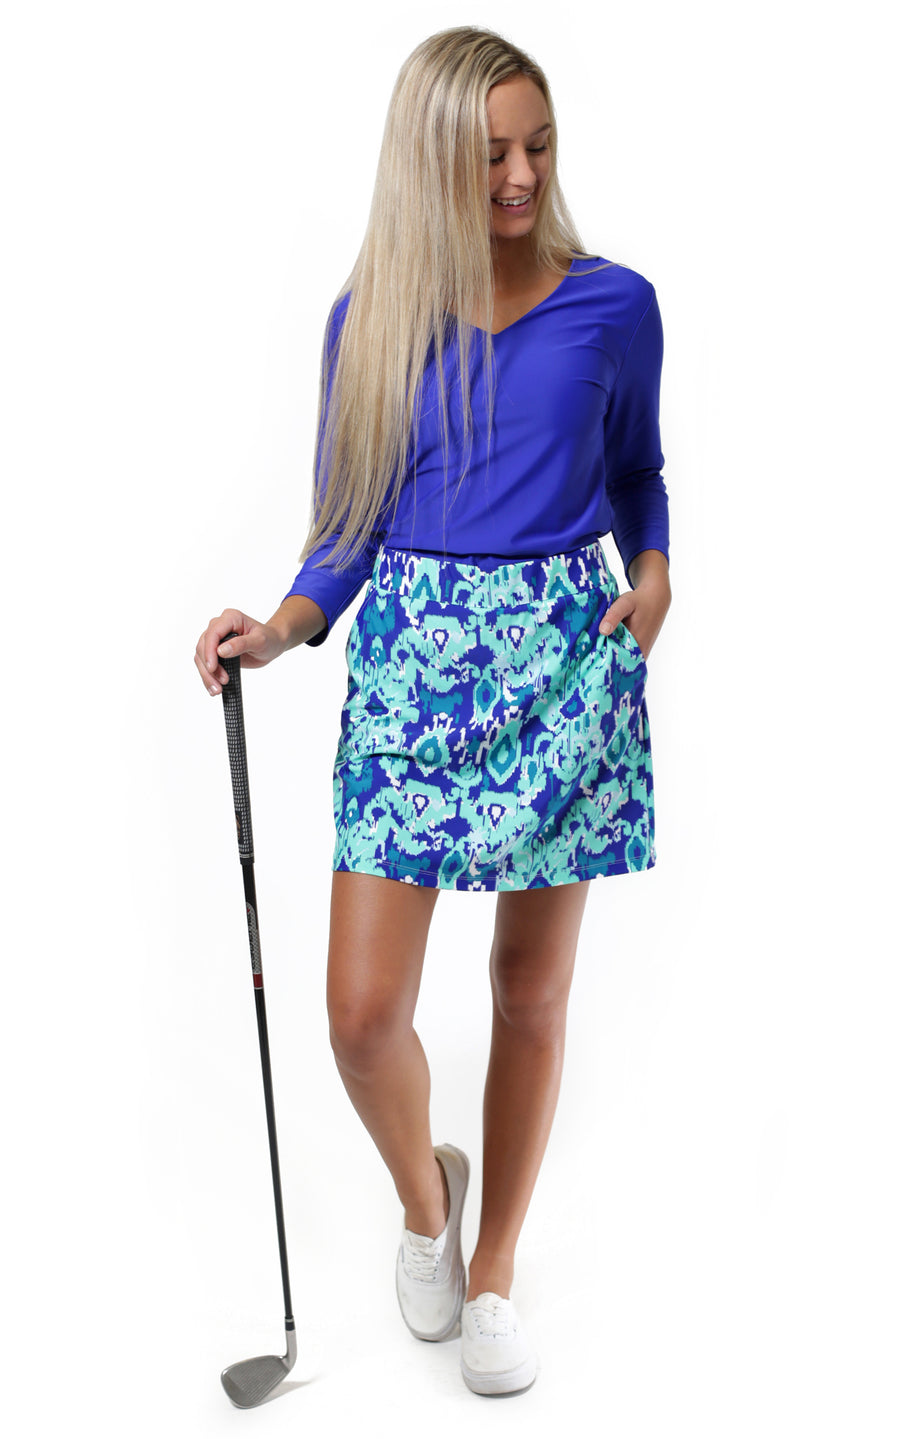 All For Color-Bahama Blue Harbor Isle Skort - FINAL SALE-Bottoms